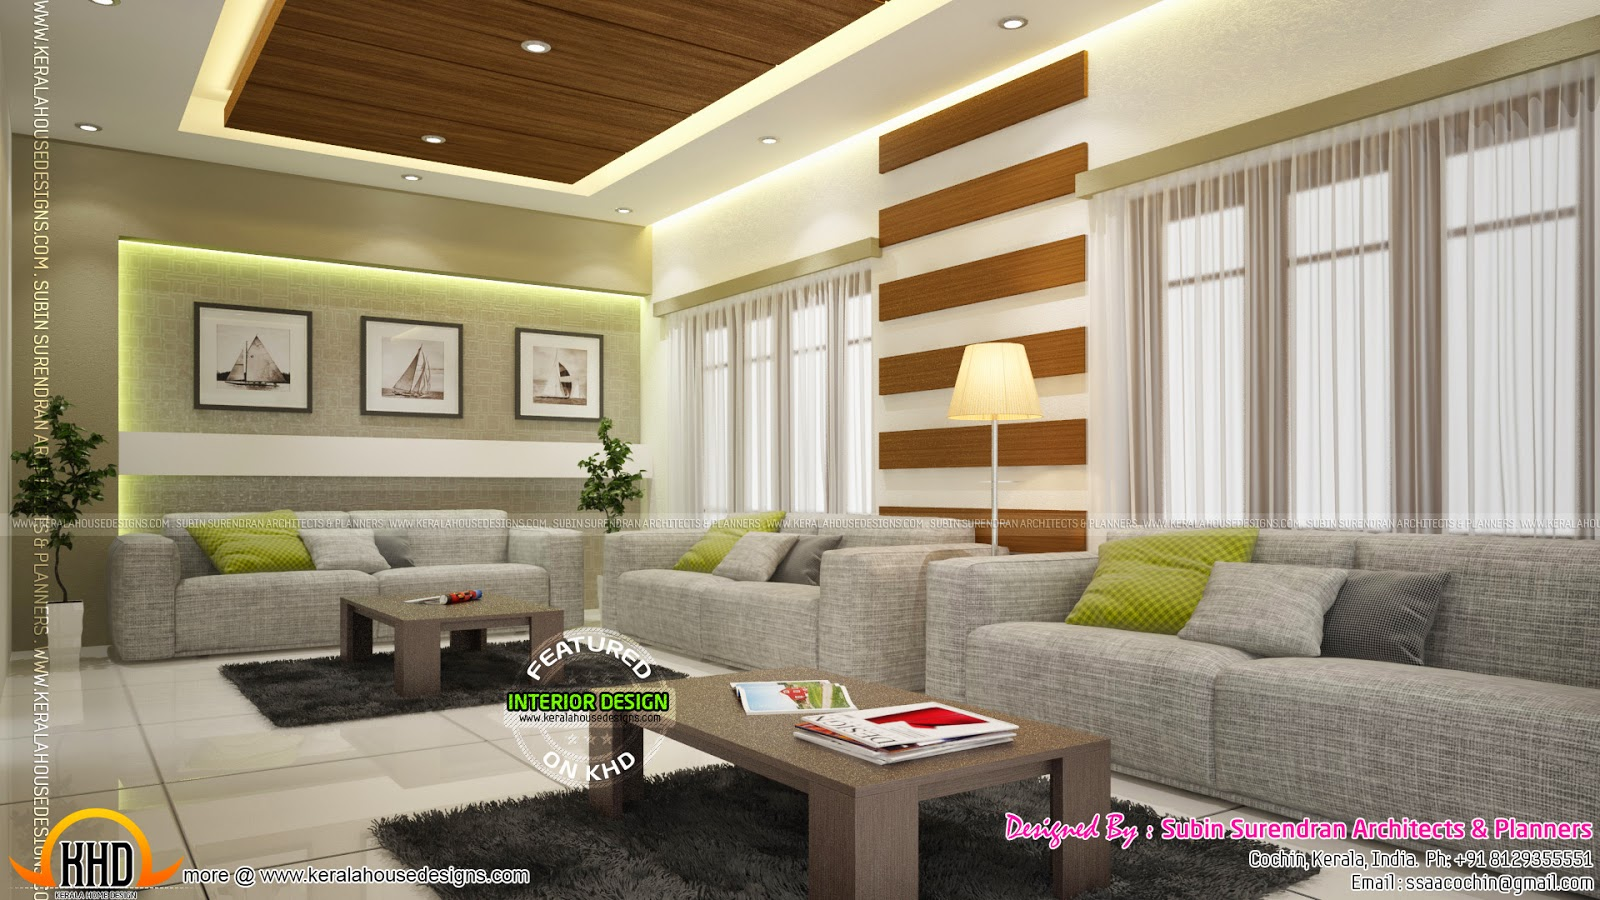 Beautiful home interior designs kerala home design and floor plans Beautiful home interior design ideas